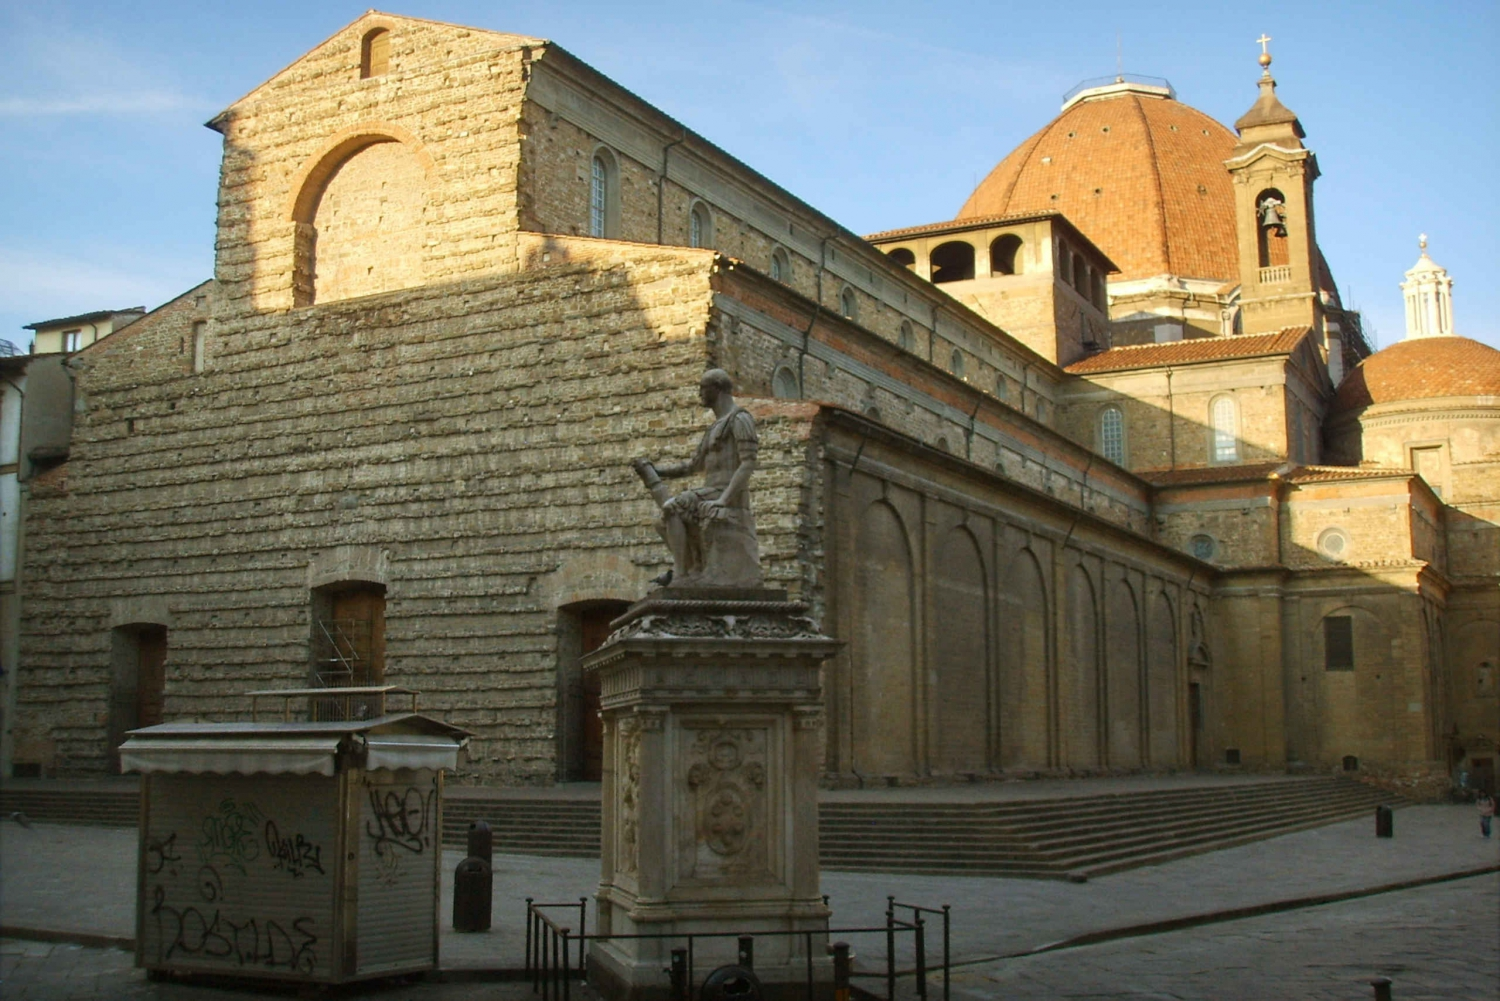 Medici Tour: History and Secrets through Family Monuments